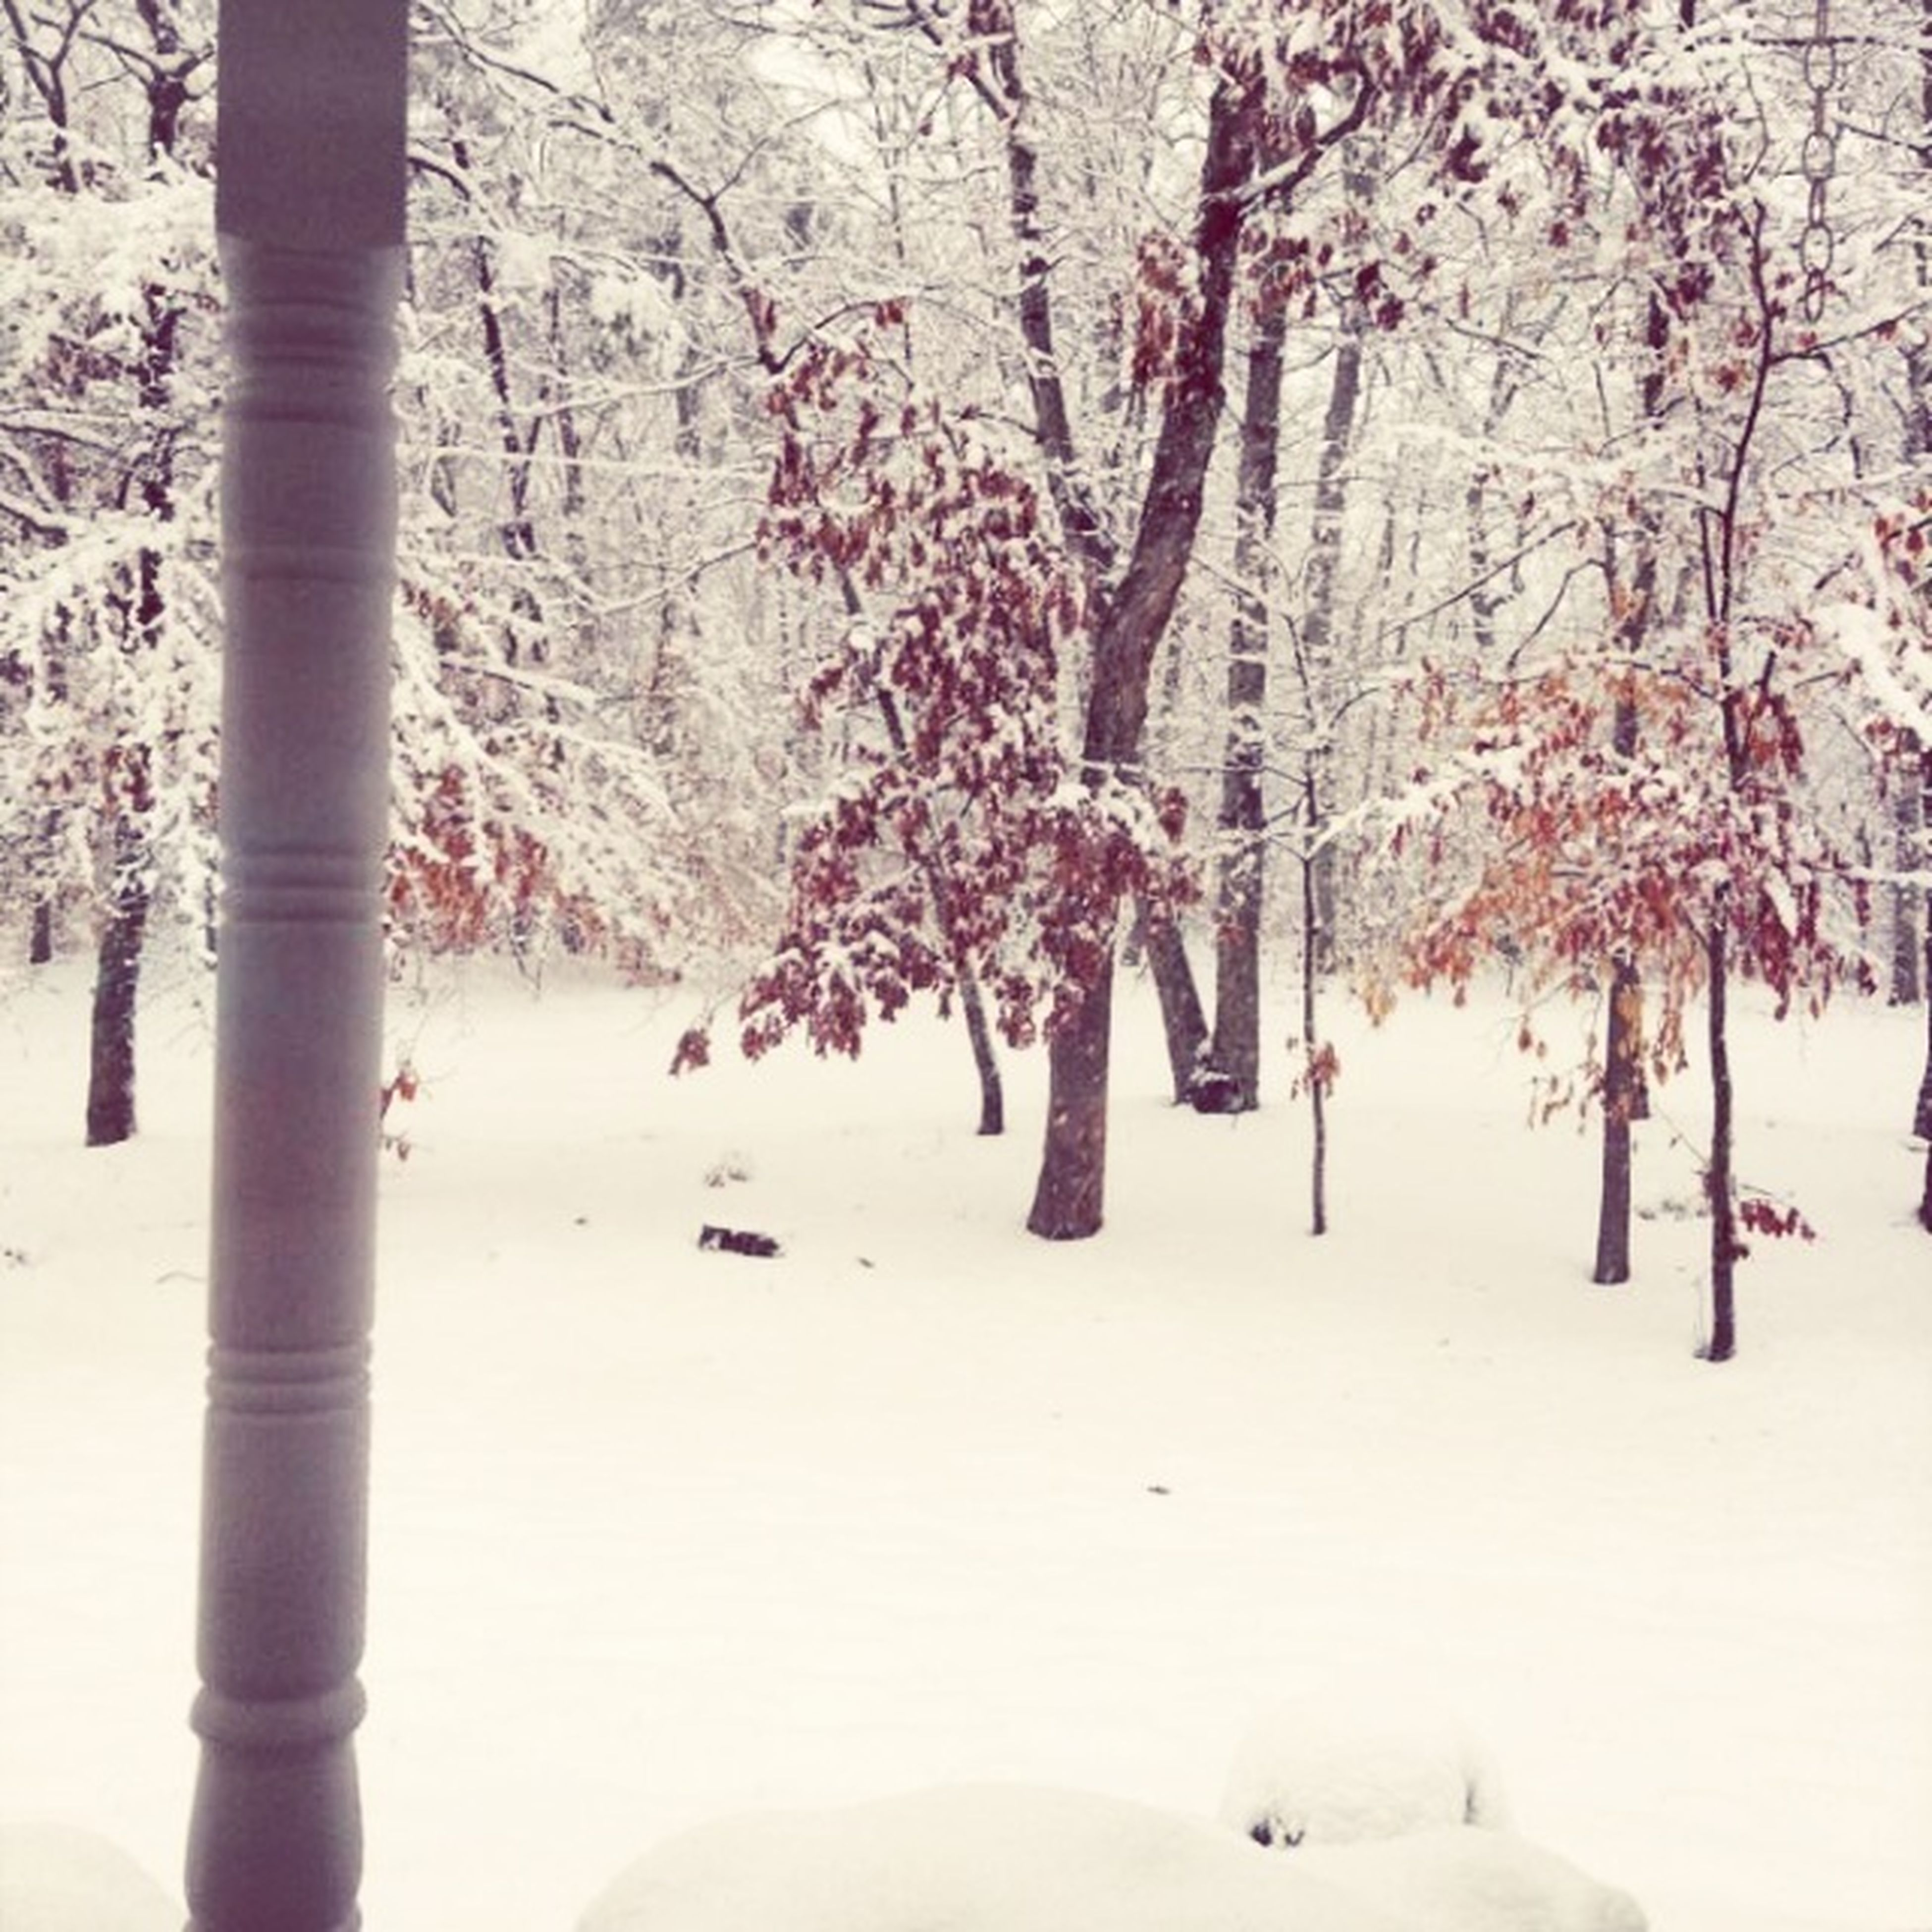 snow, winter, cold temperature, tree, season, weather, tranquility, nature, branch, bare tree, covering, tree trunk, beauty in nature, tranquil scene, landscape, scenics, frozen, field, growth, covered